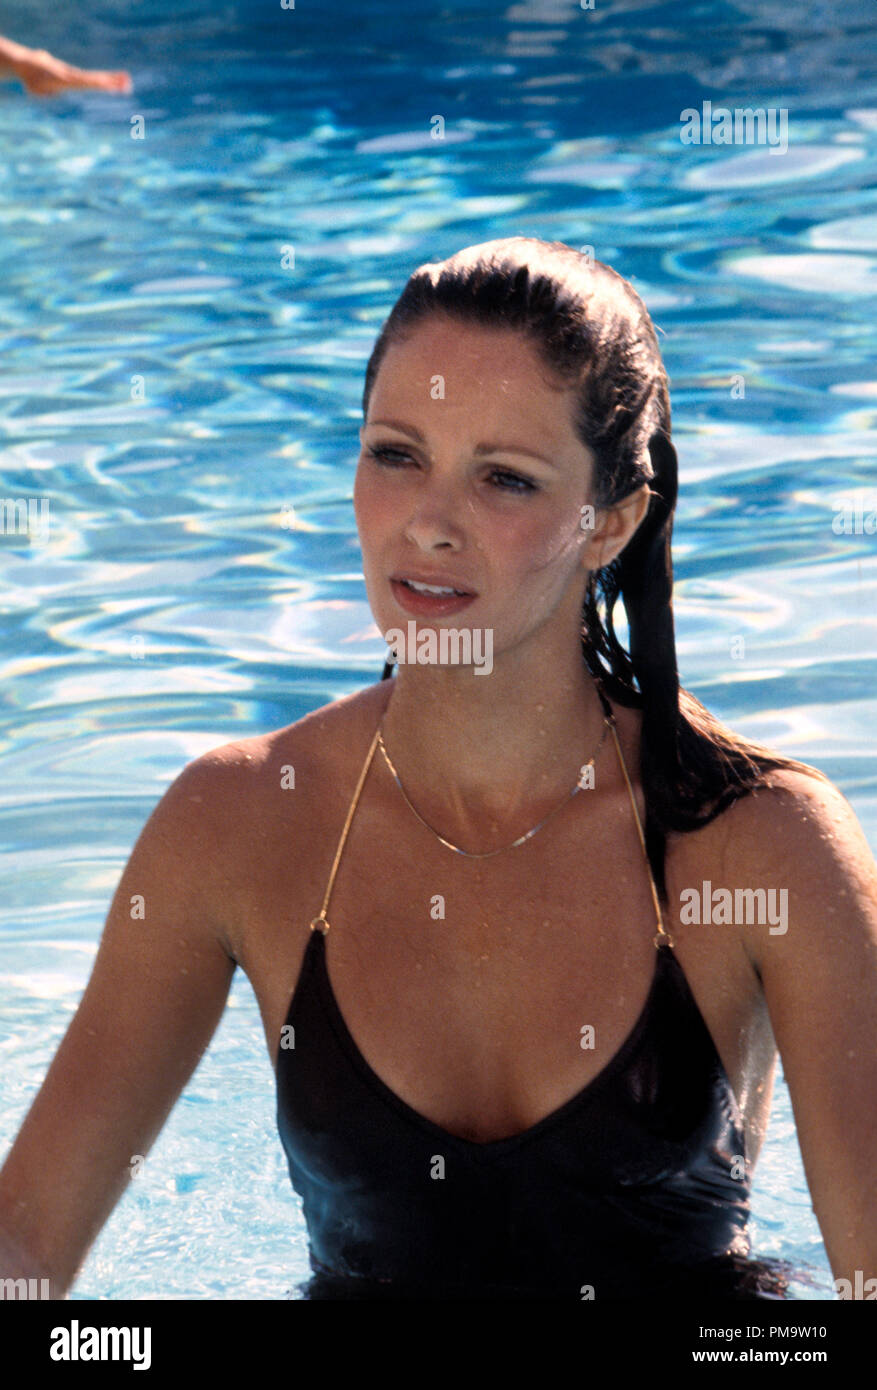 50f3517cfe Studio Publicity Still from 'The Users' Jaclyn Smith © 1978 Aaron Spelling  Productions All